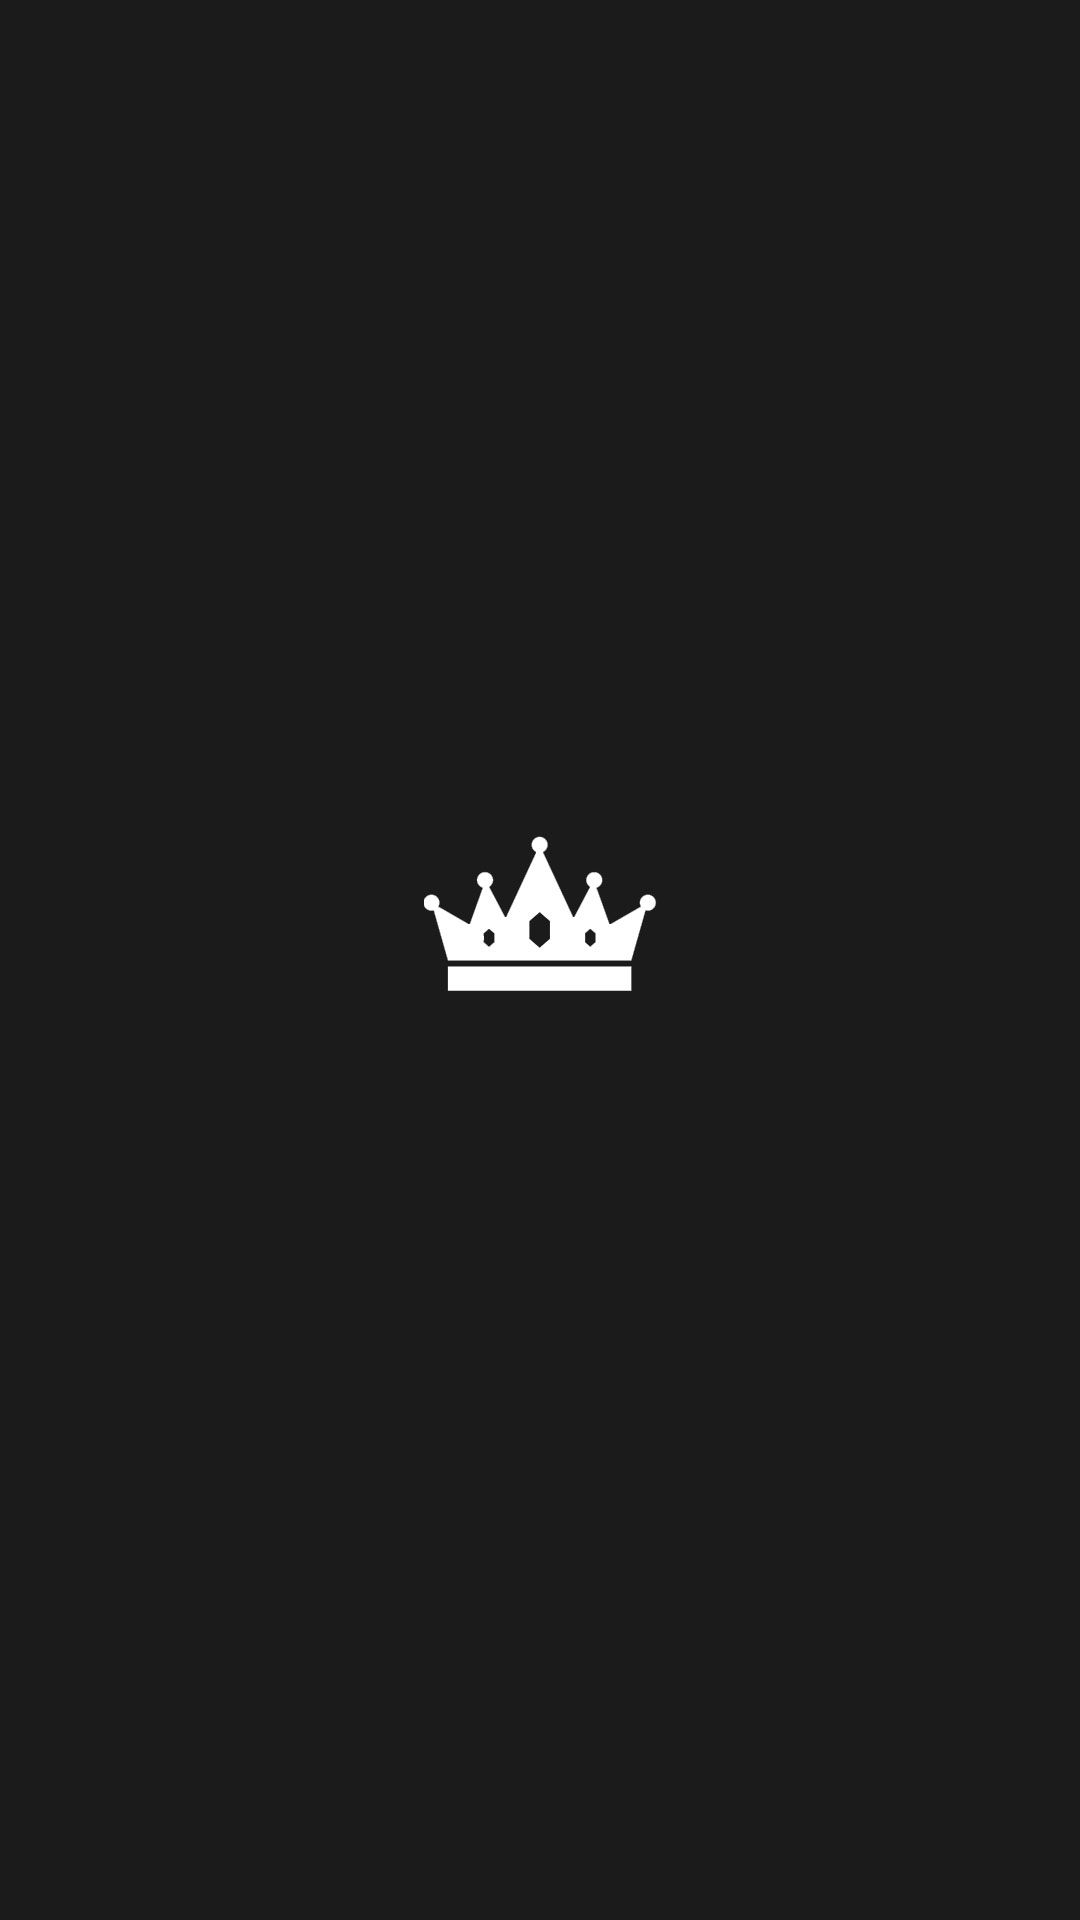 King Crown Black Quote Hd Wallpaper Phone Wallpaper Mobile Phone Hd Quotes Hd Wallpaper Phone Wallpaper